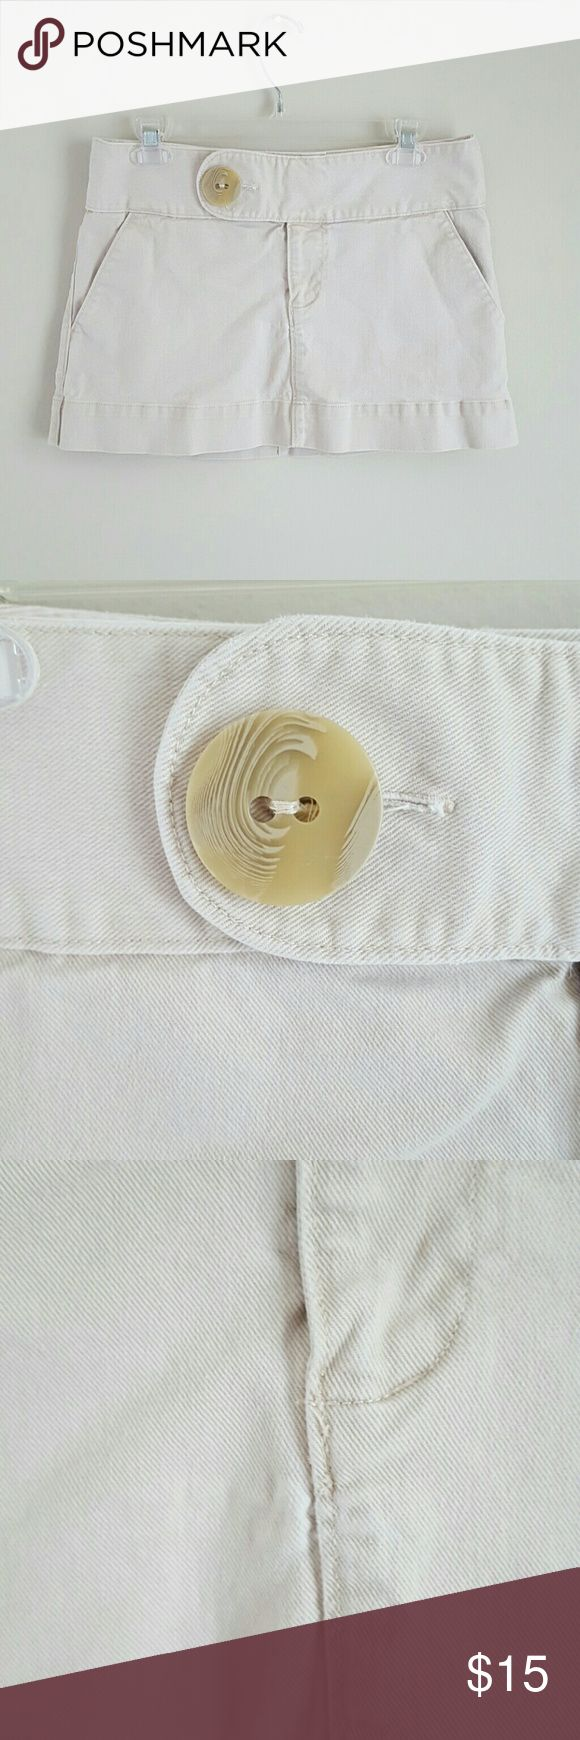 Free People Khaki Mini Skirt sz 6! Free People khaki big button mini skirt, size 6! There is a small area below the fly which looks like the stretch may be slightly worn (pic 3) and one pocket is stained inside but does not show through on the exterior of the skirt (pic 4 and 5). Otherwise very good condition! Free People Skirts Mini